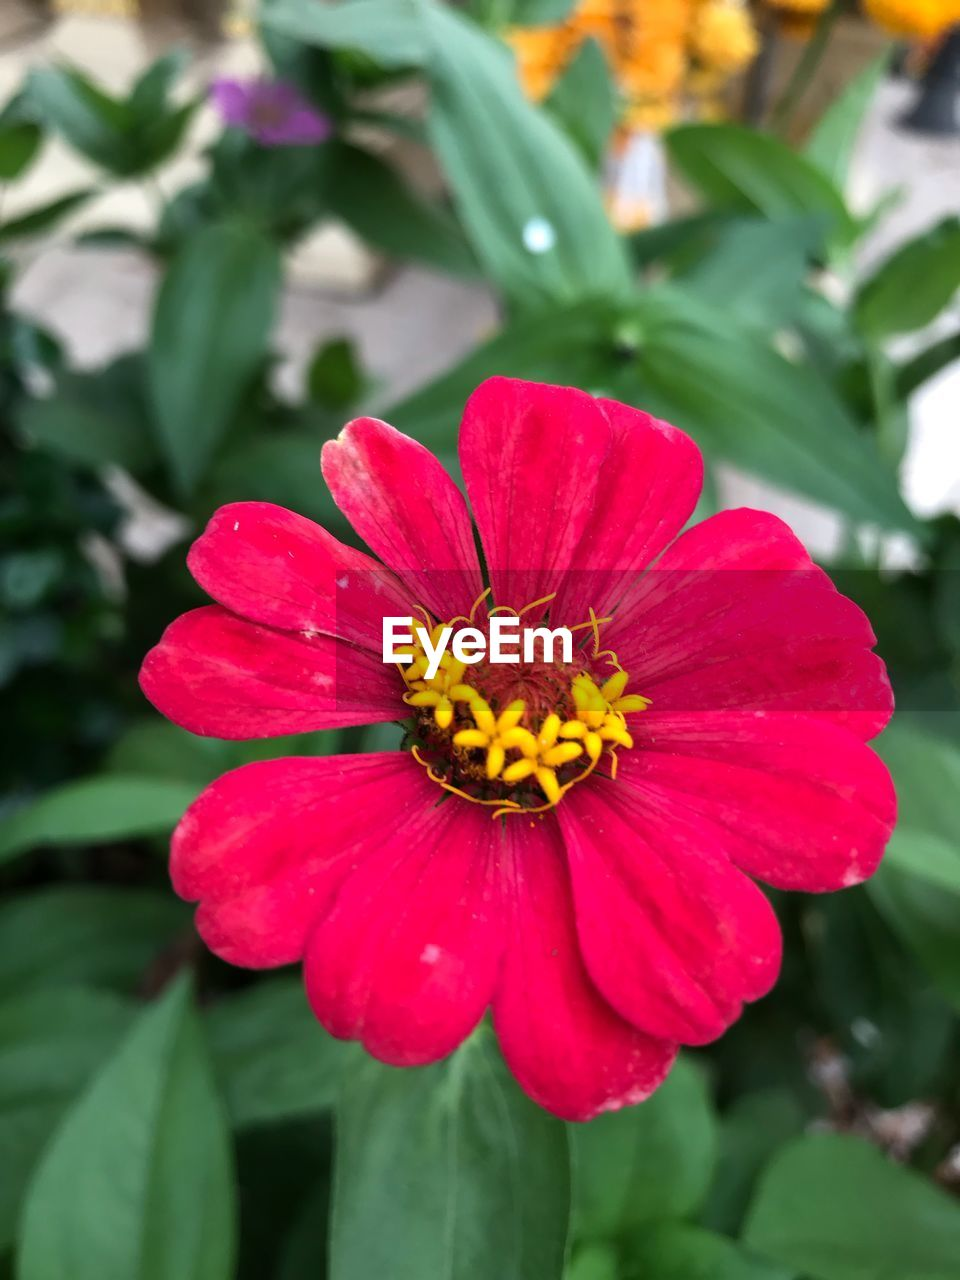 flower, petal, flower head, beauty in nature, nature, fragility, freshness, growth, plant, pollen, blooming, outdoors, close-up, yellow, focus on foreground, no people, day, zinnia